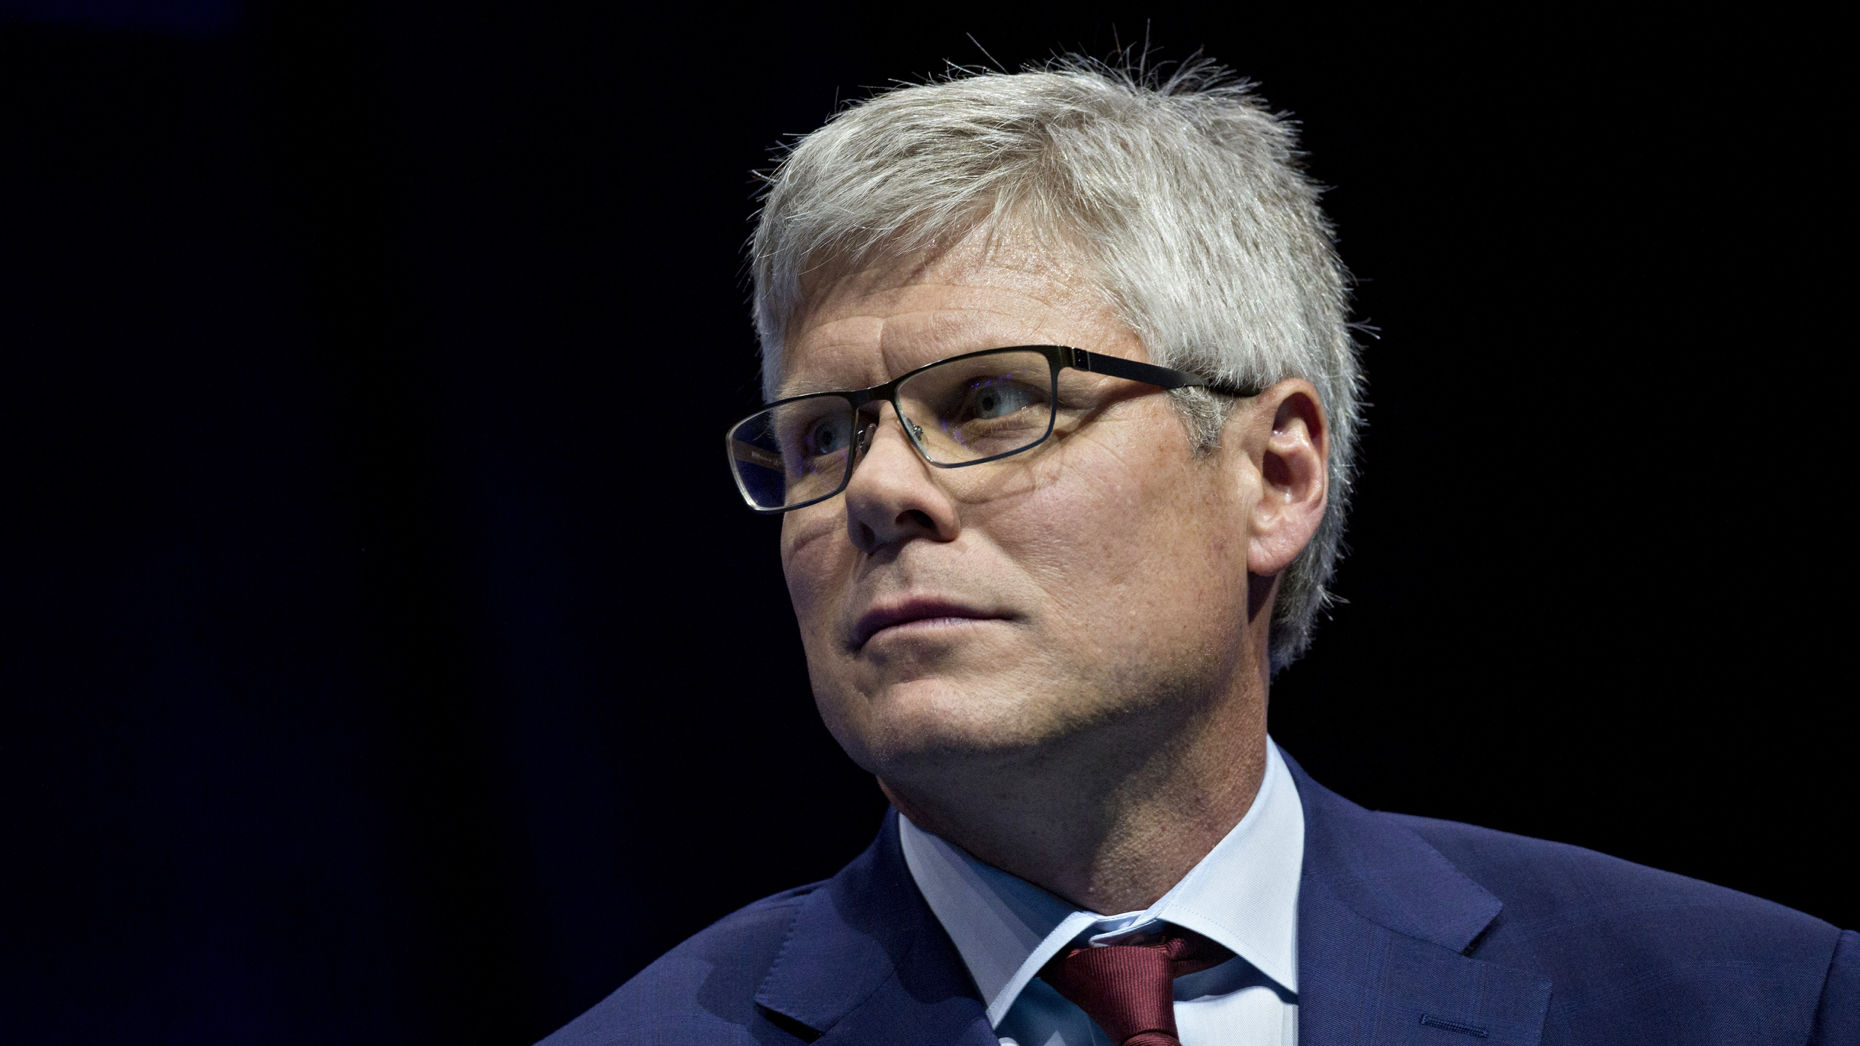 Qualcomm CEO Steve Mollenkopf  at an event in Washington, D.C., U.S., on Thursday. Photo by Bloomberg